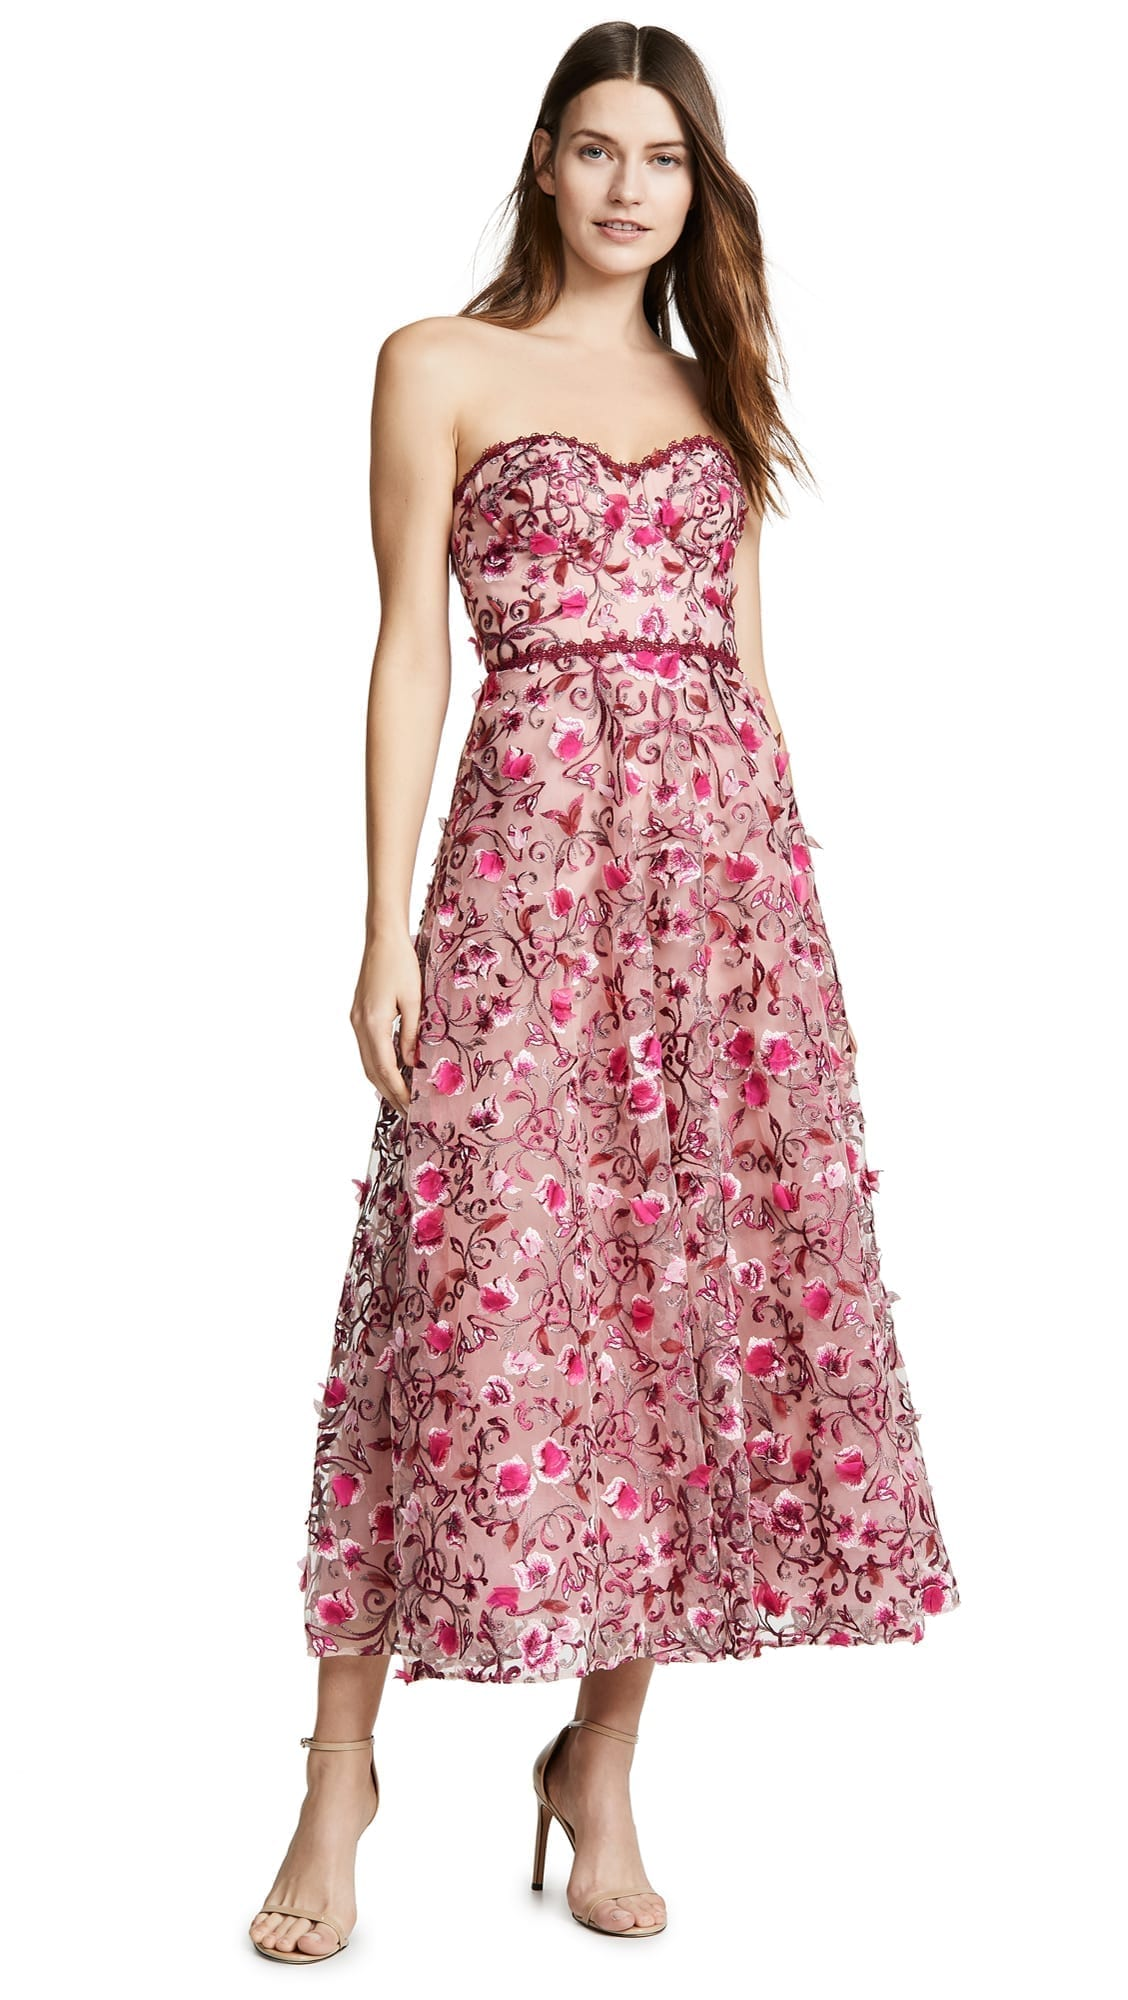 MARCHESA NOTTE Floral Embroidered Tea Length Blush Gown